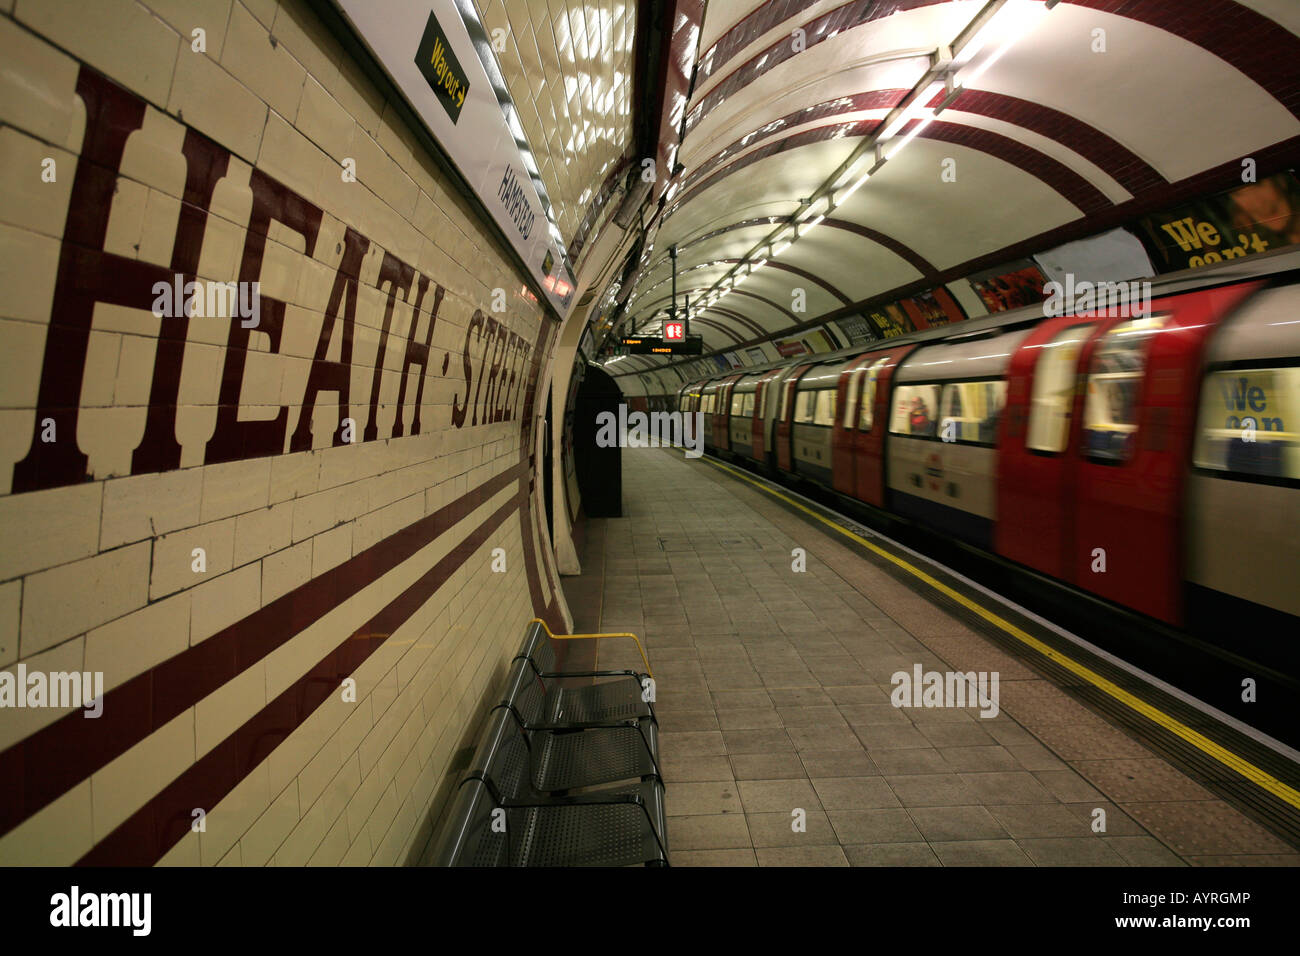 Hampstead tube station, London Underground, London, England, UK - Stock Image